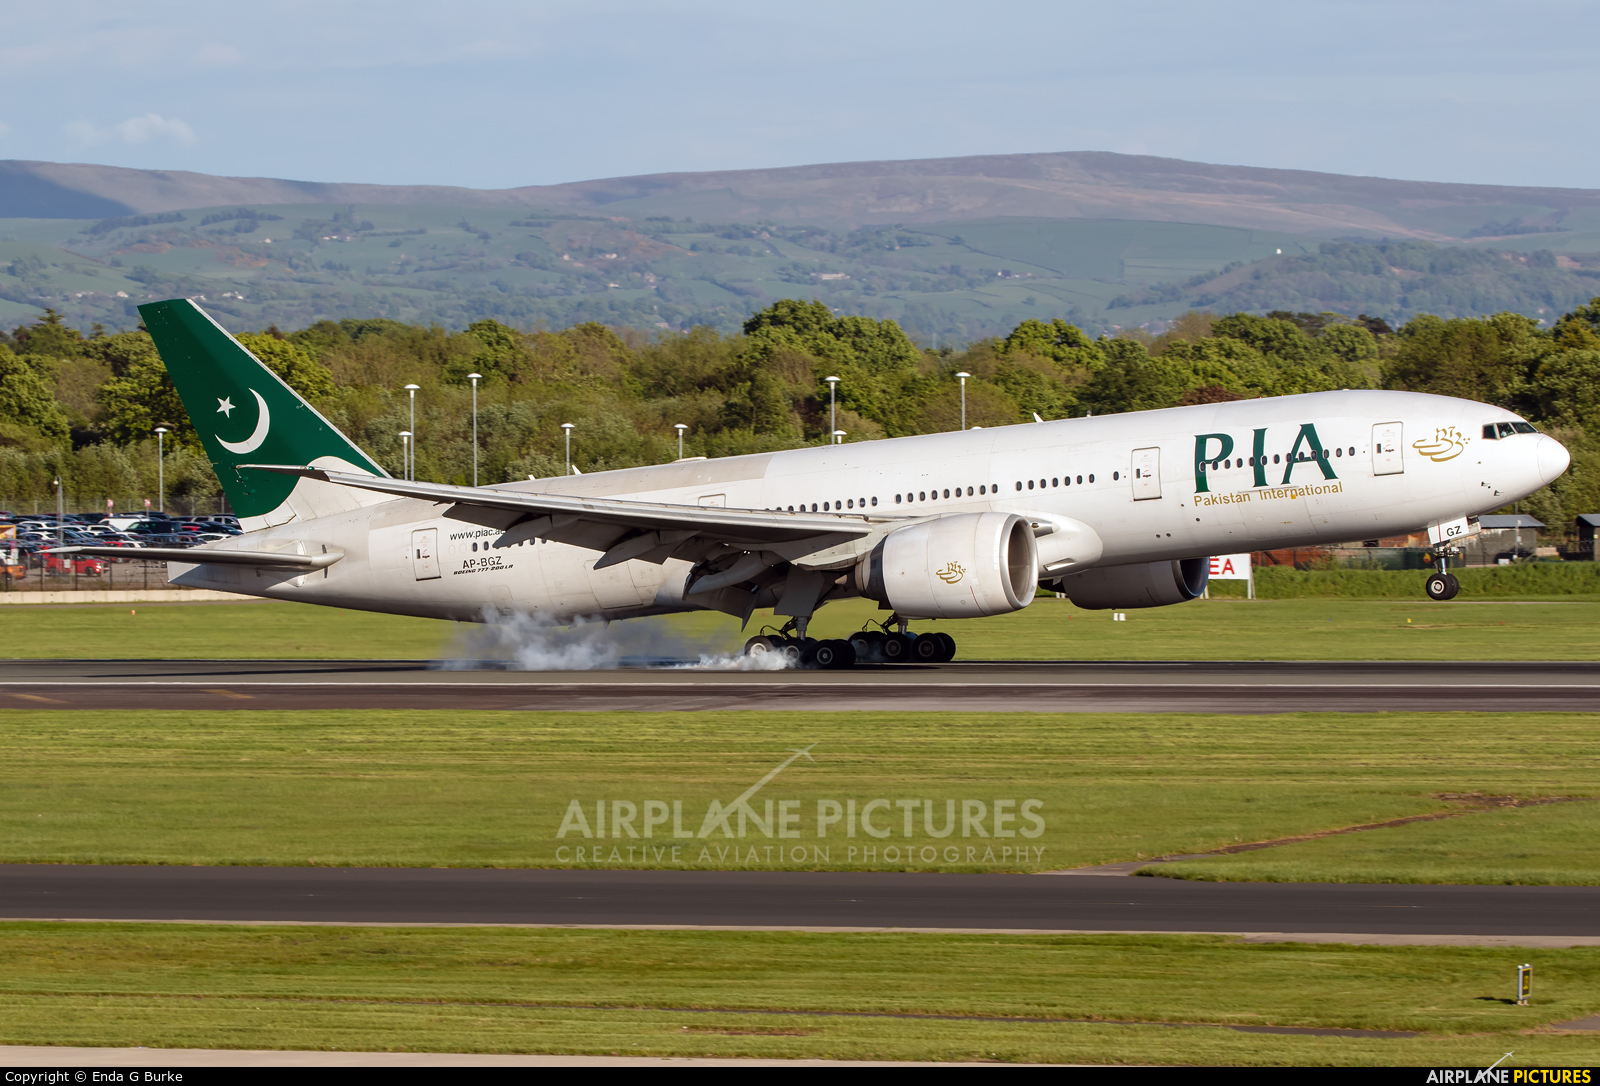 PIA - Pakistan International Airlines AP-BGZ aircraft at Manchester